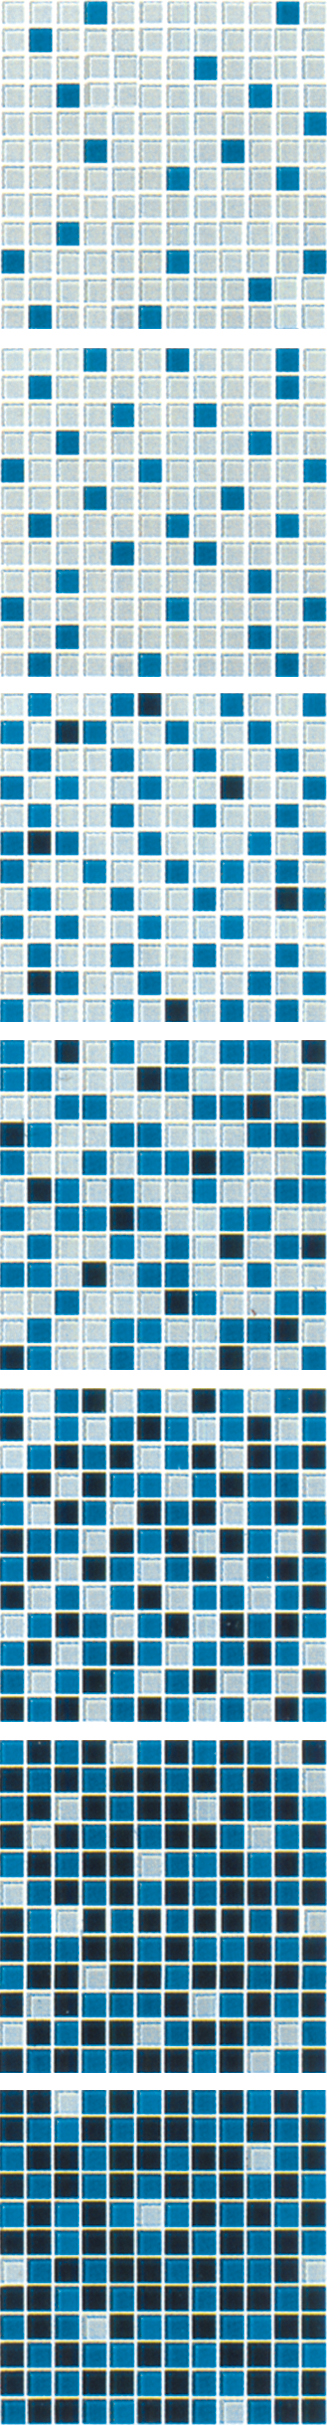 Blue Gradual Change Mosaic Tile